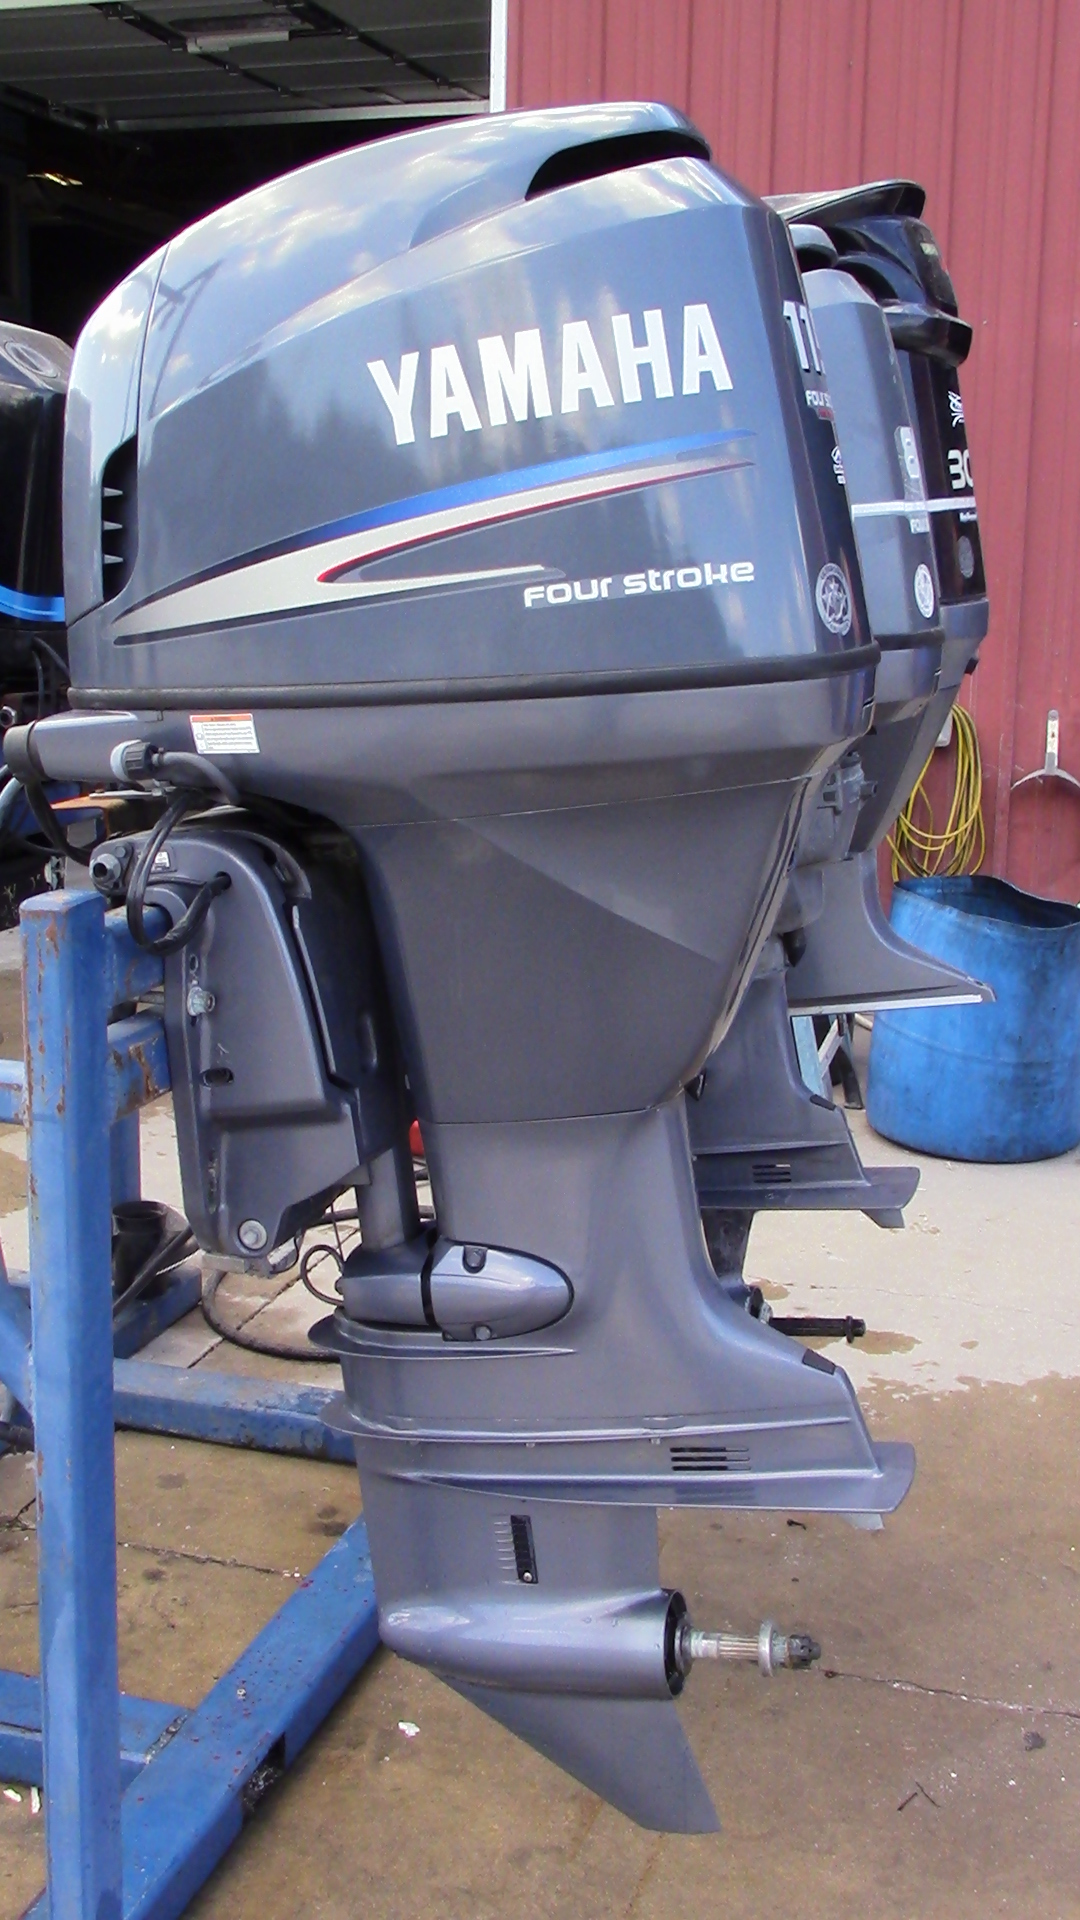 Used 2008 yamaha f115txr 115hp 4 stroke outboard boat for Yamaha outboard parts house